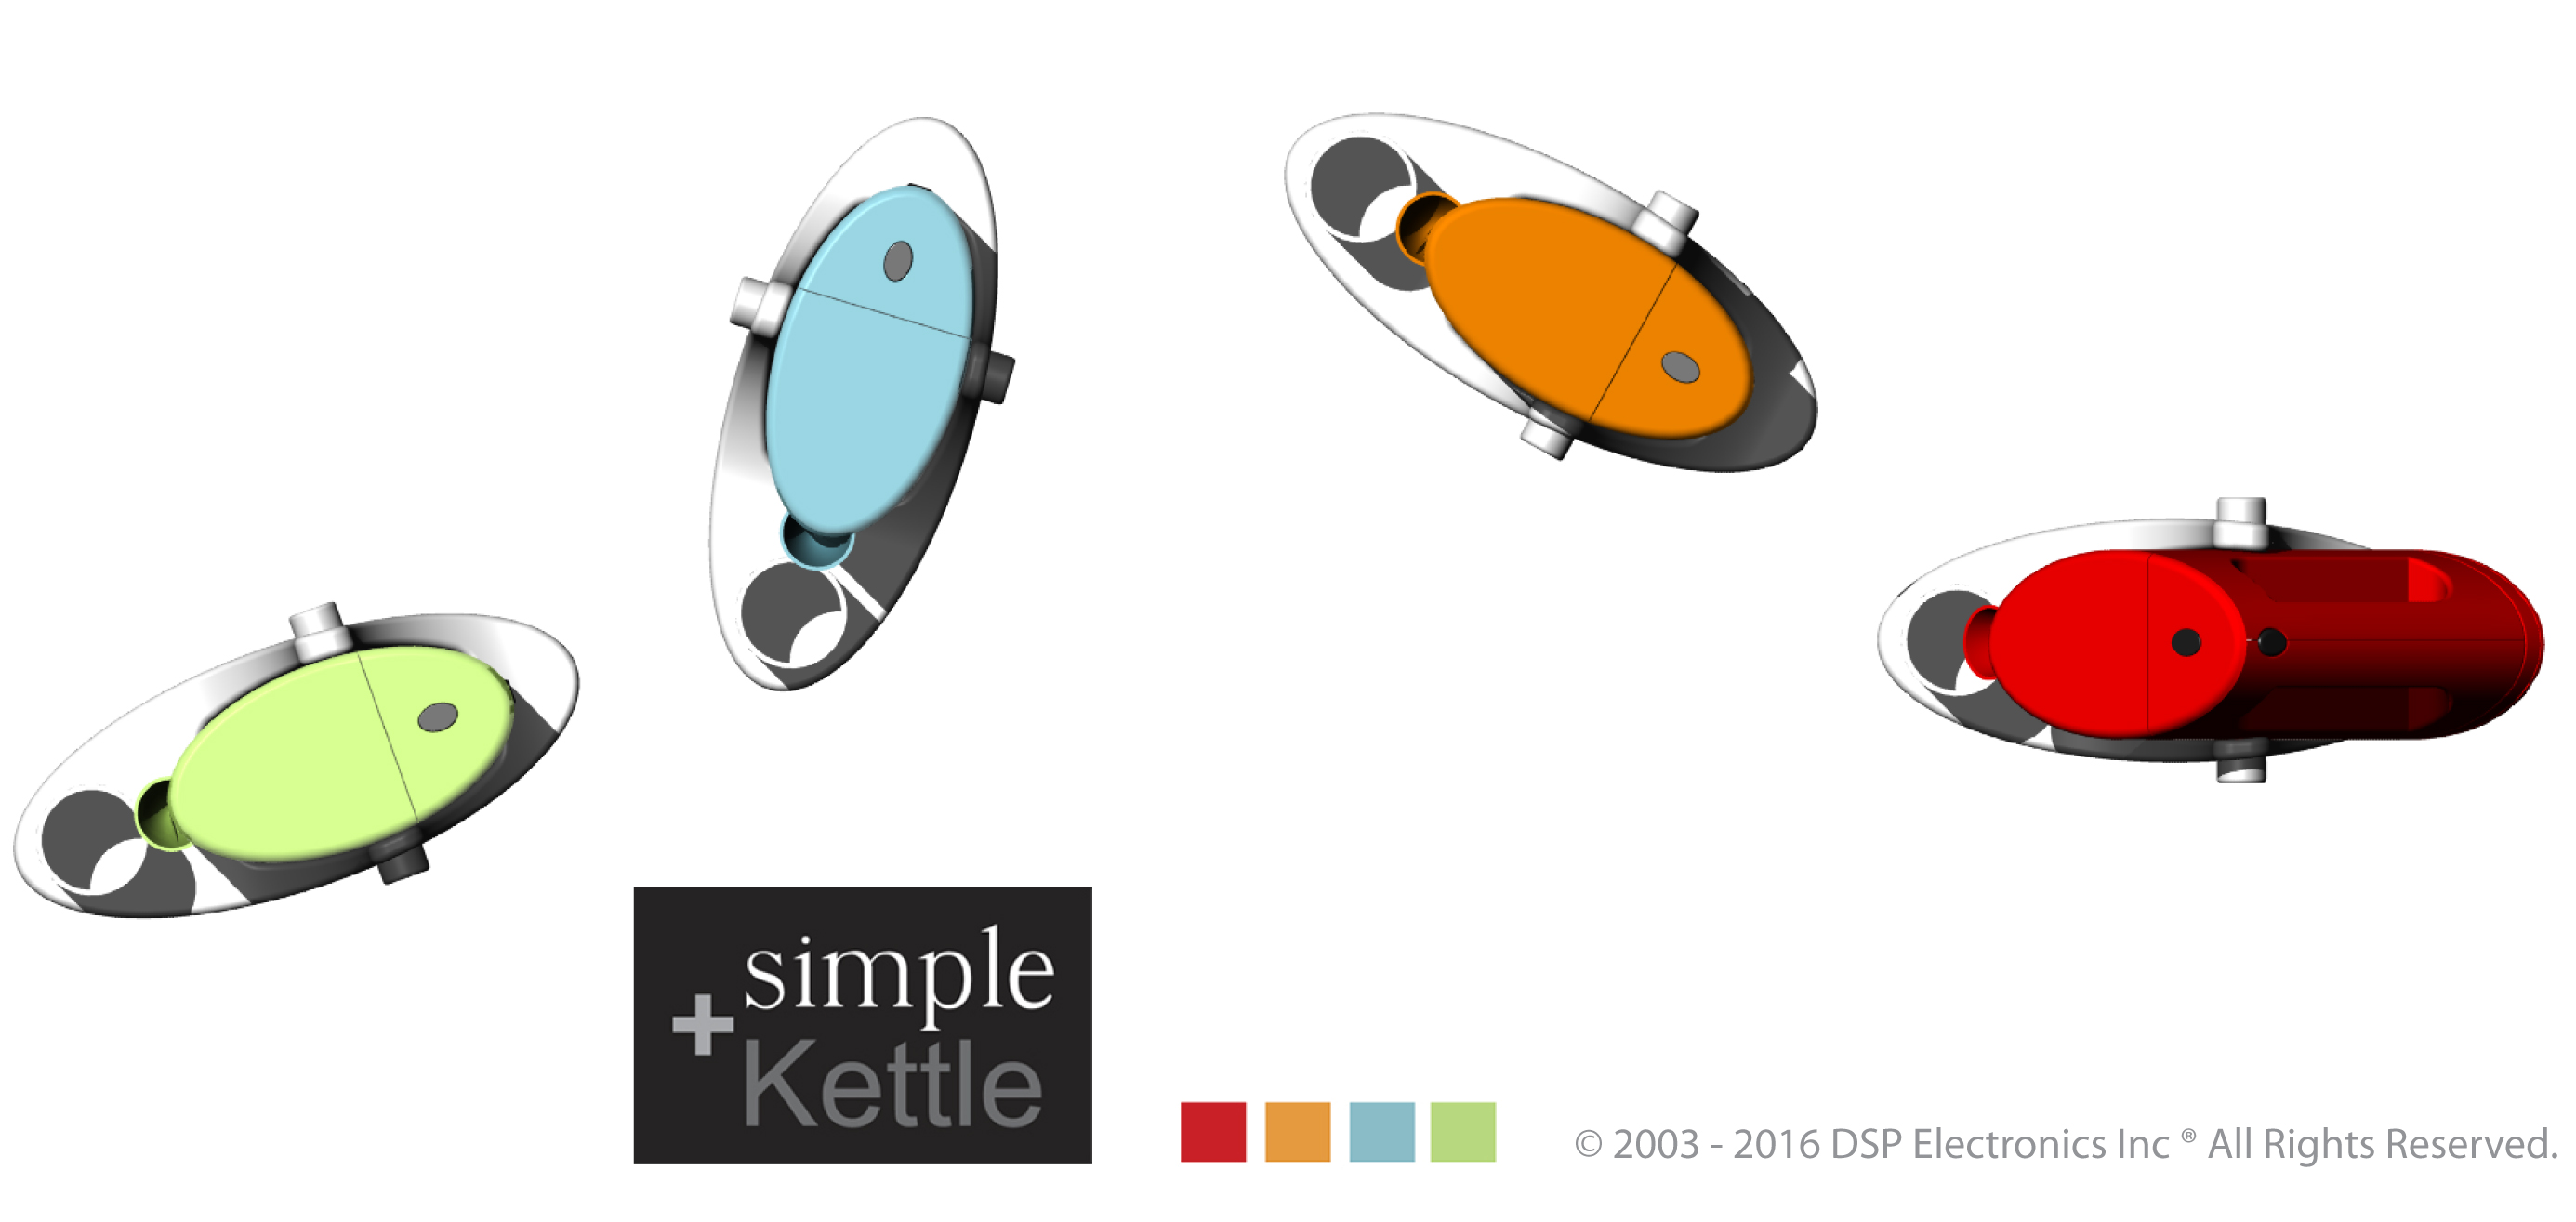 simple + kettle DSP Electronics Inc design innovation creative industrial design dspelectronics.com software hardware firmware IoT